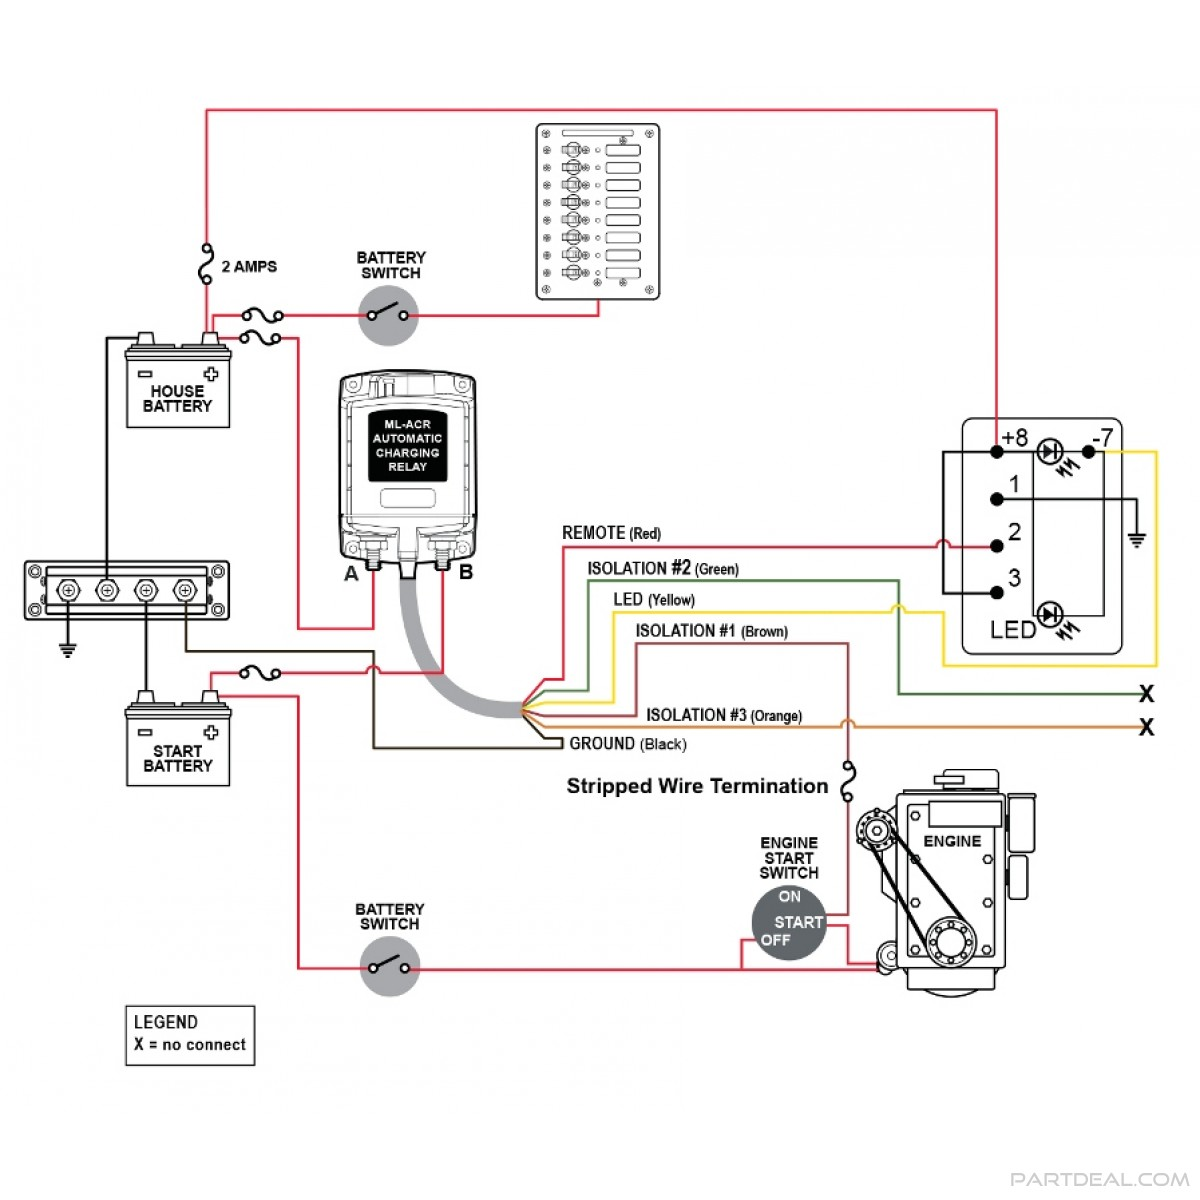 12 Volt Continuous Duty Solenoid Wiring Diagram